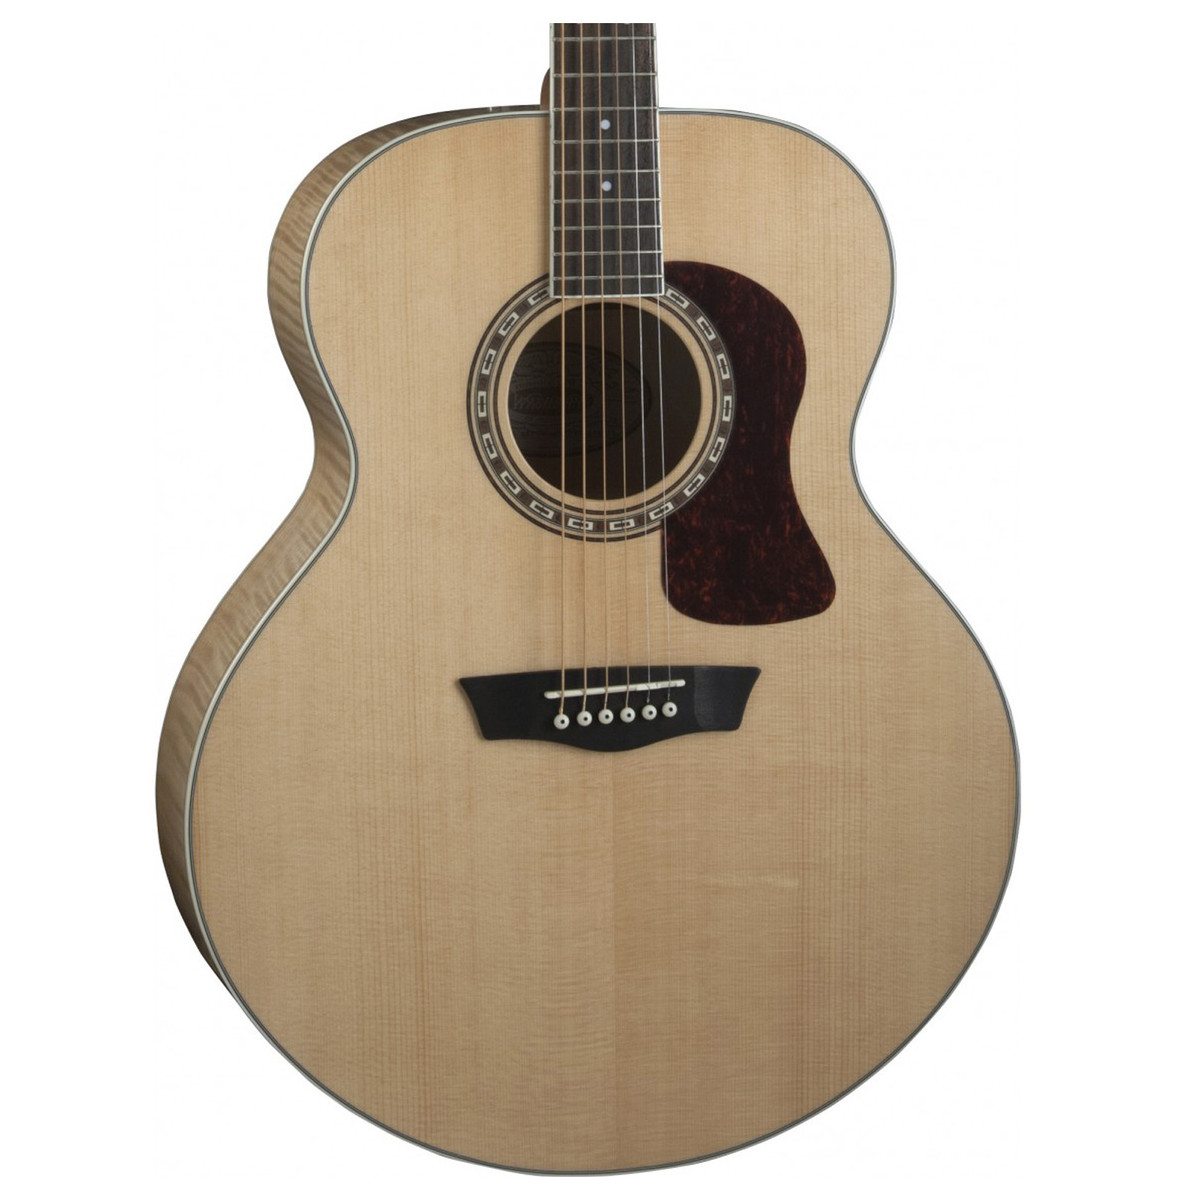 Washburn Guitars Case Evaluation Essay Sample